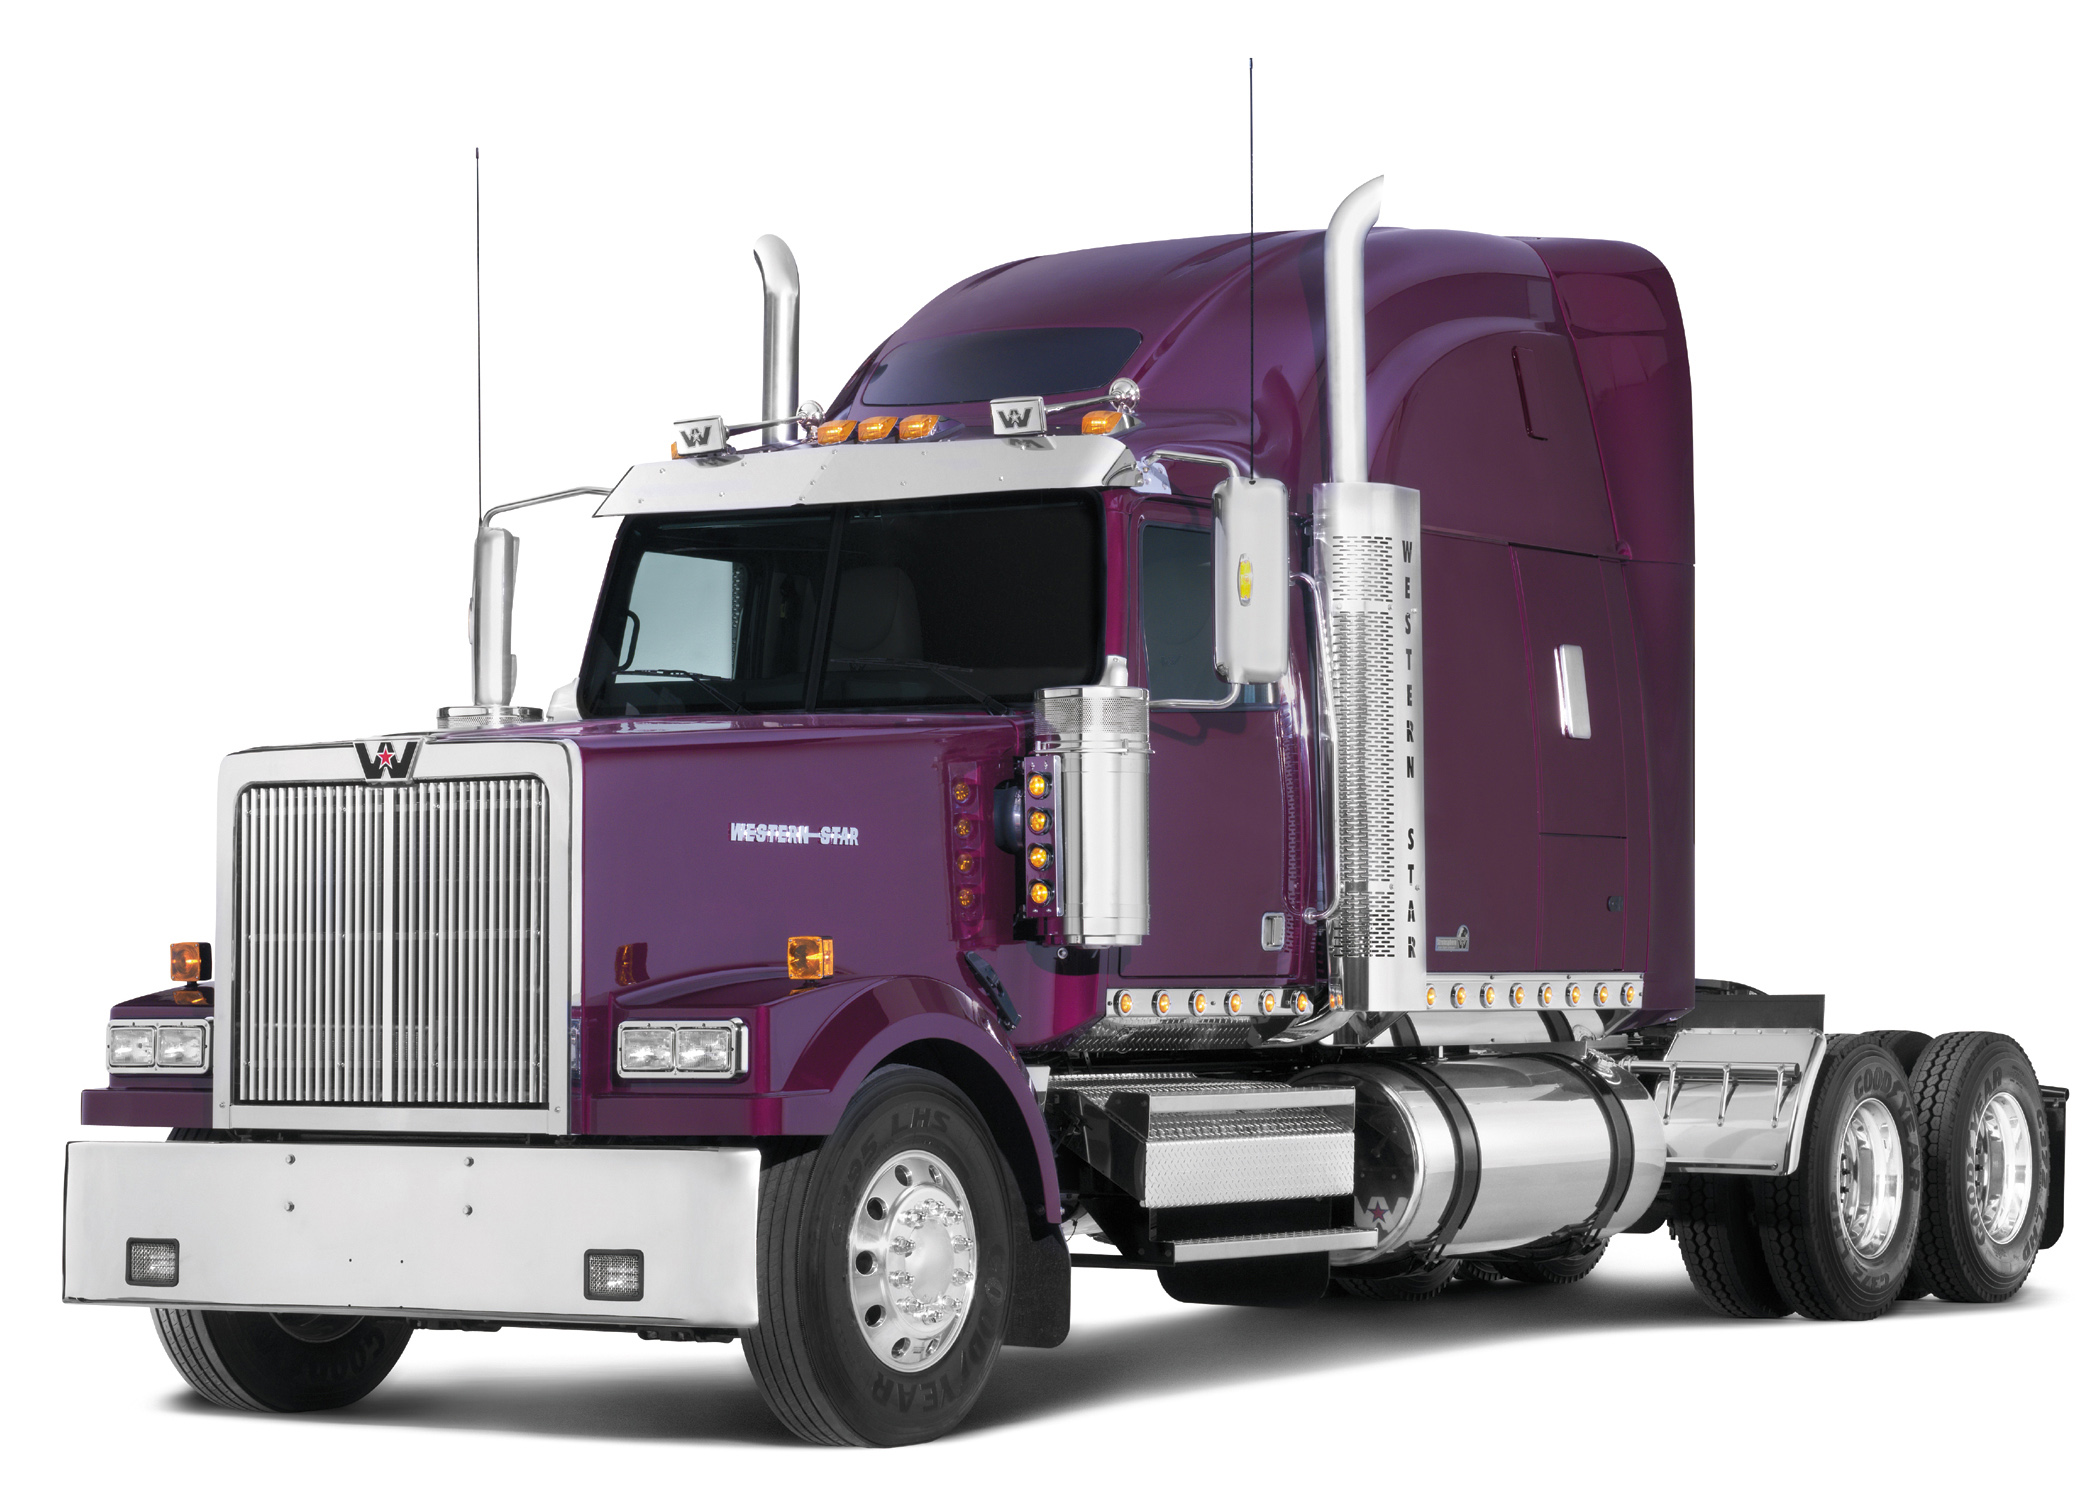 Western Star 4900 photos - PhotoGallery with 20 pics ...